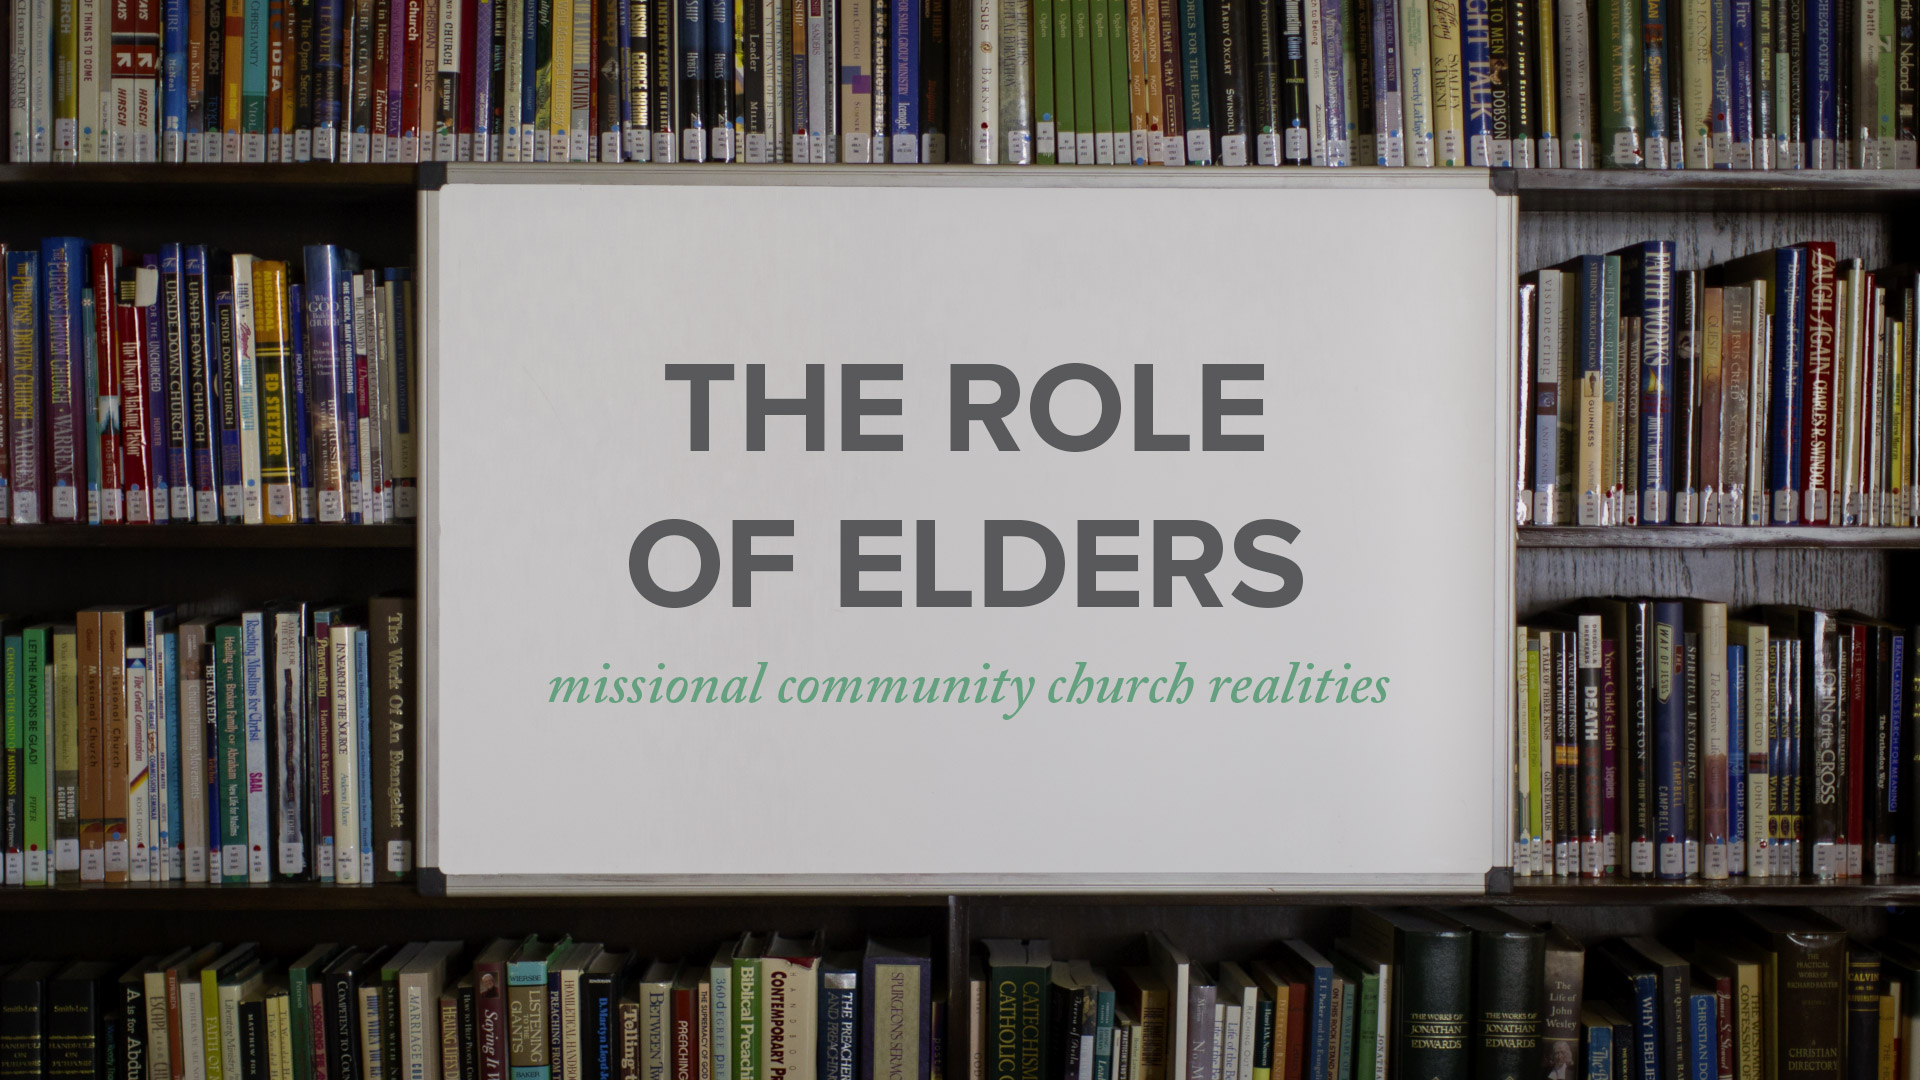 The Role of Elders